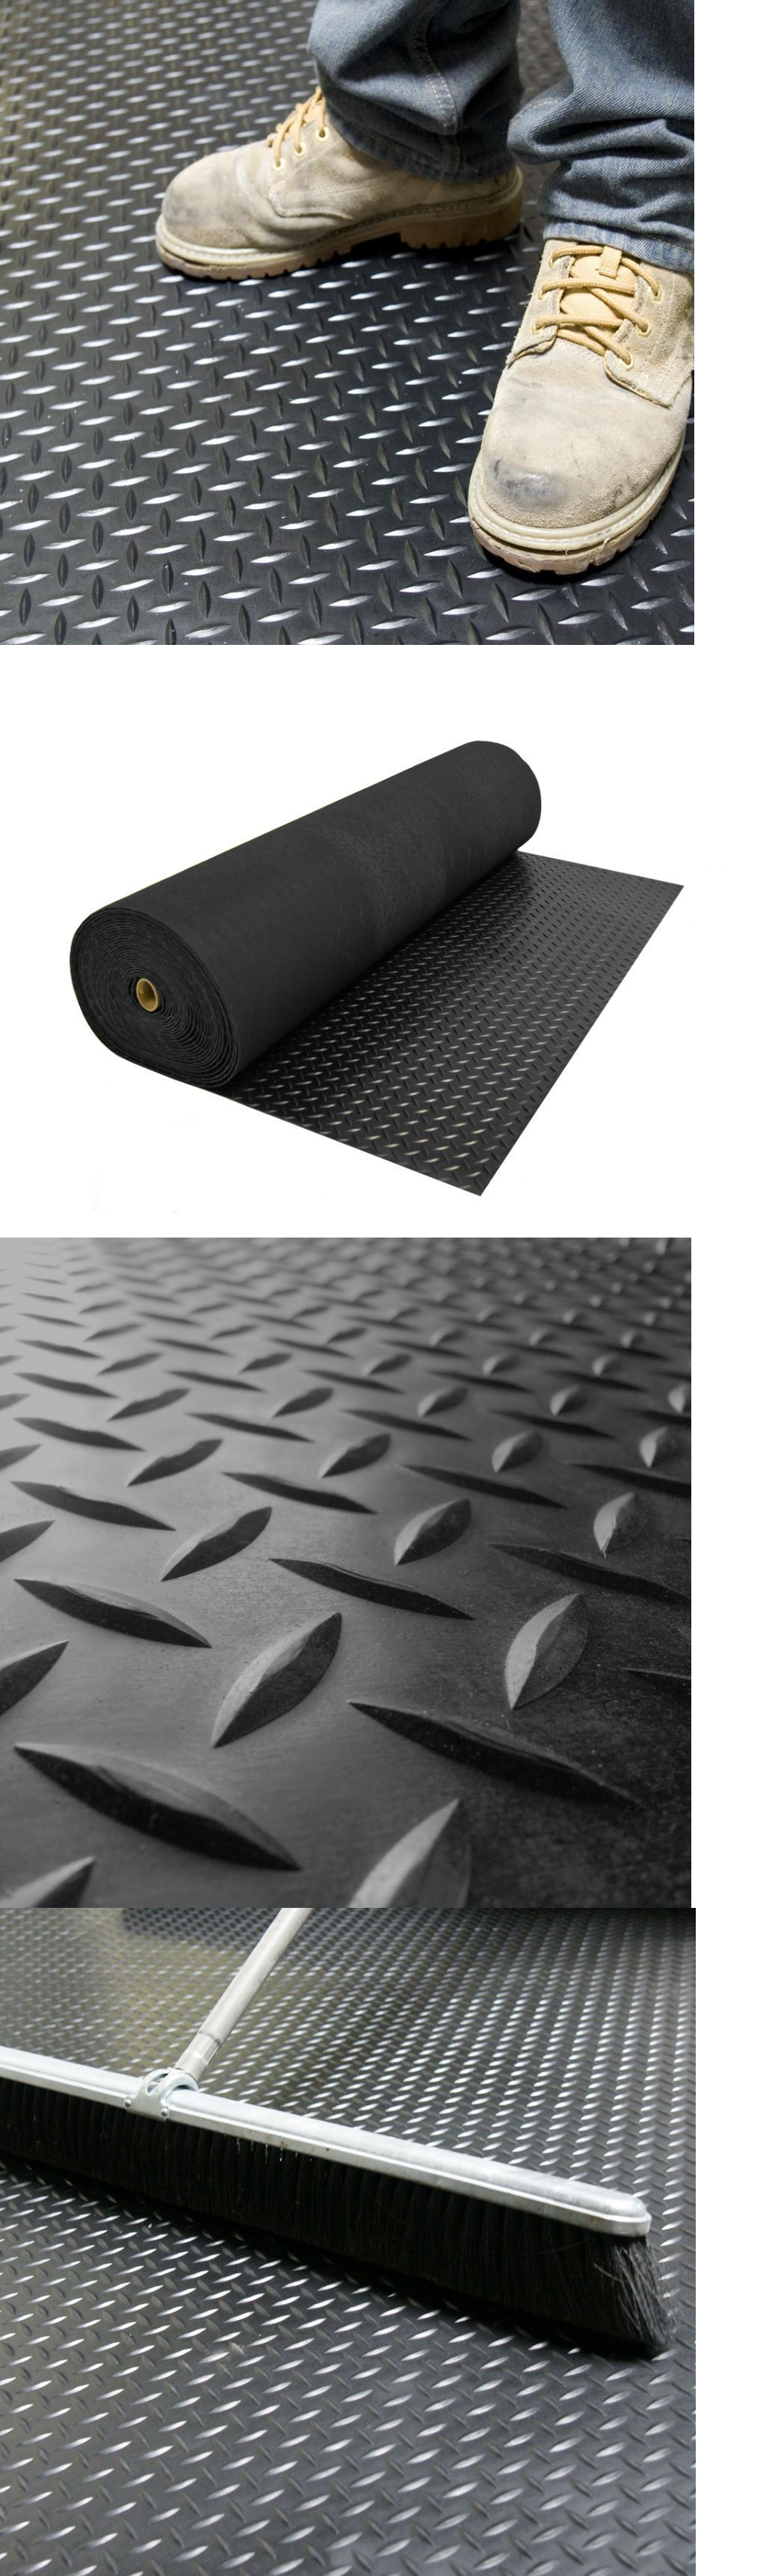 epoxy car mat protector garage mats remicooncom floor auto for pad guard parking img cars